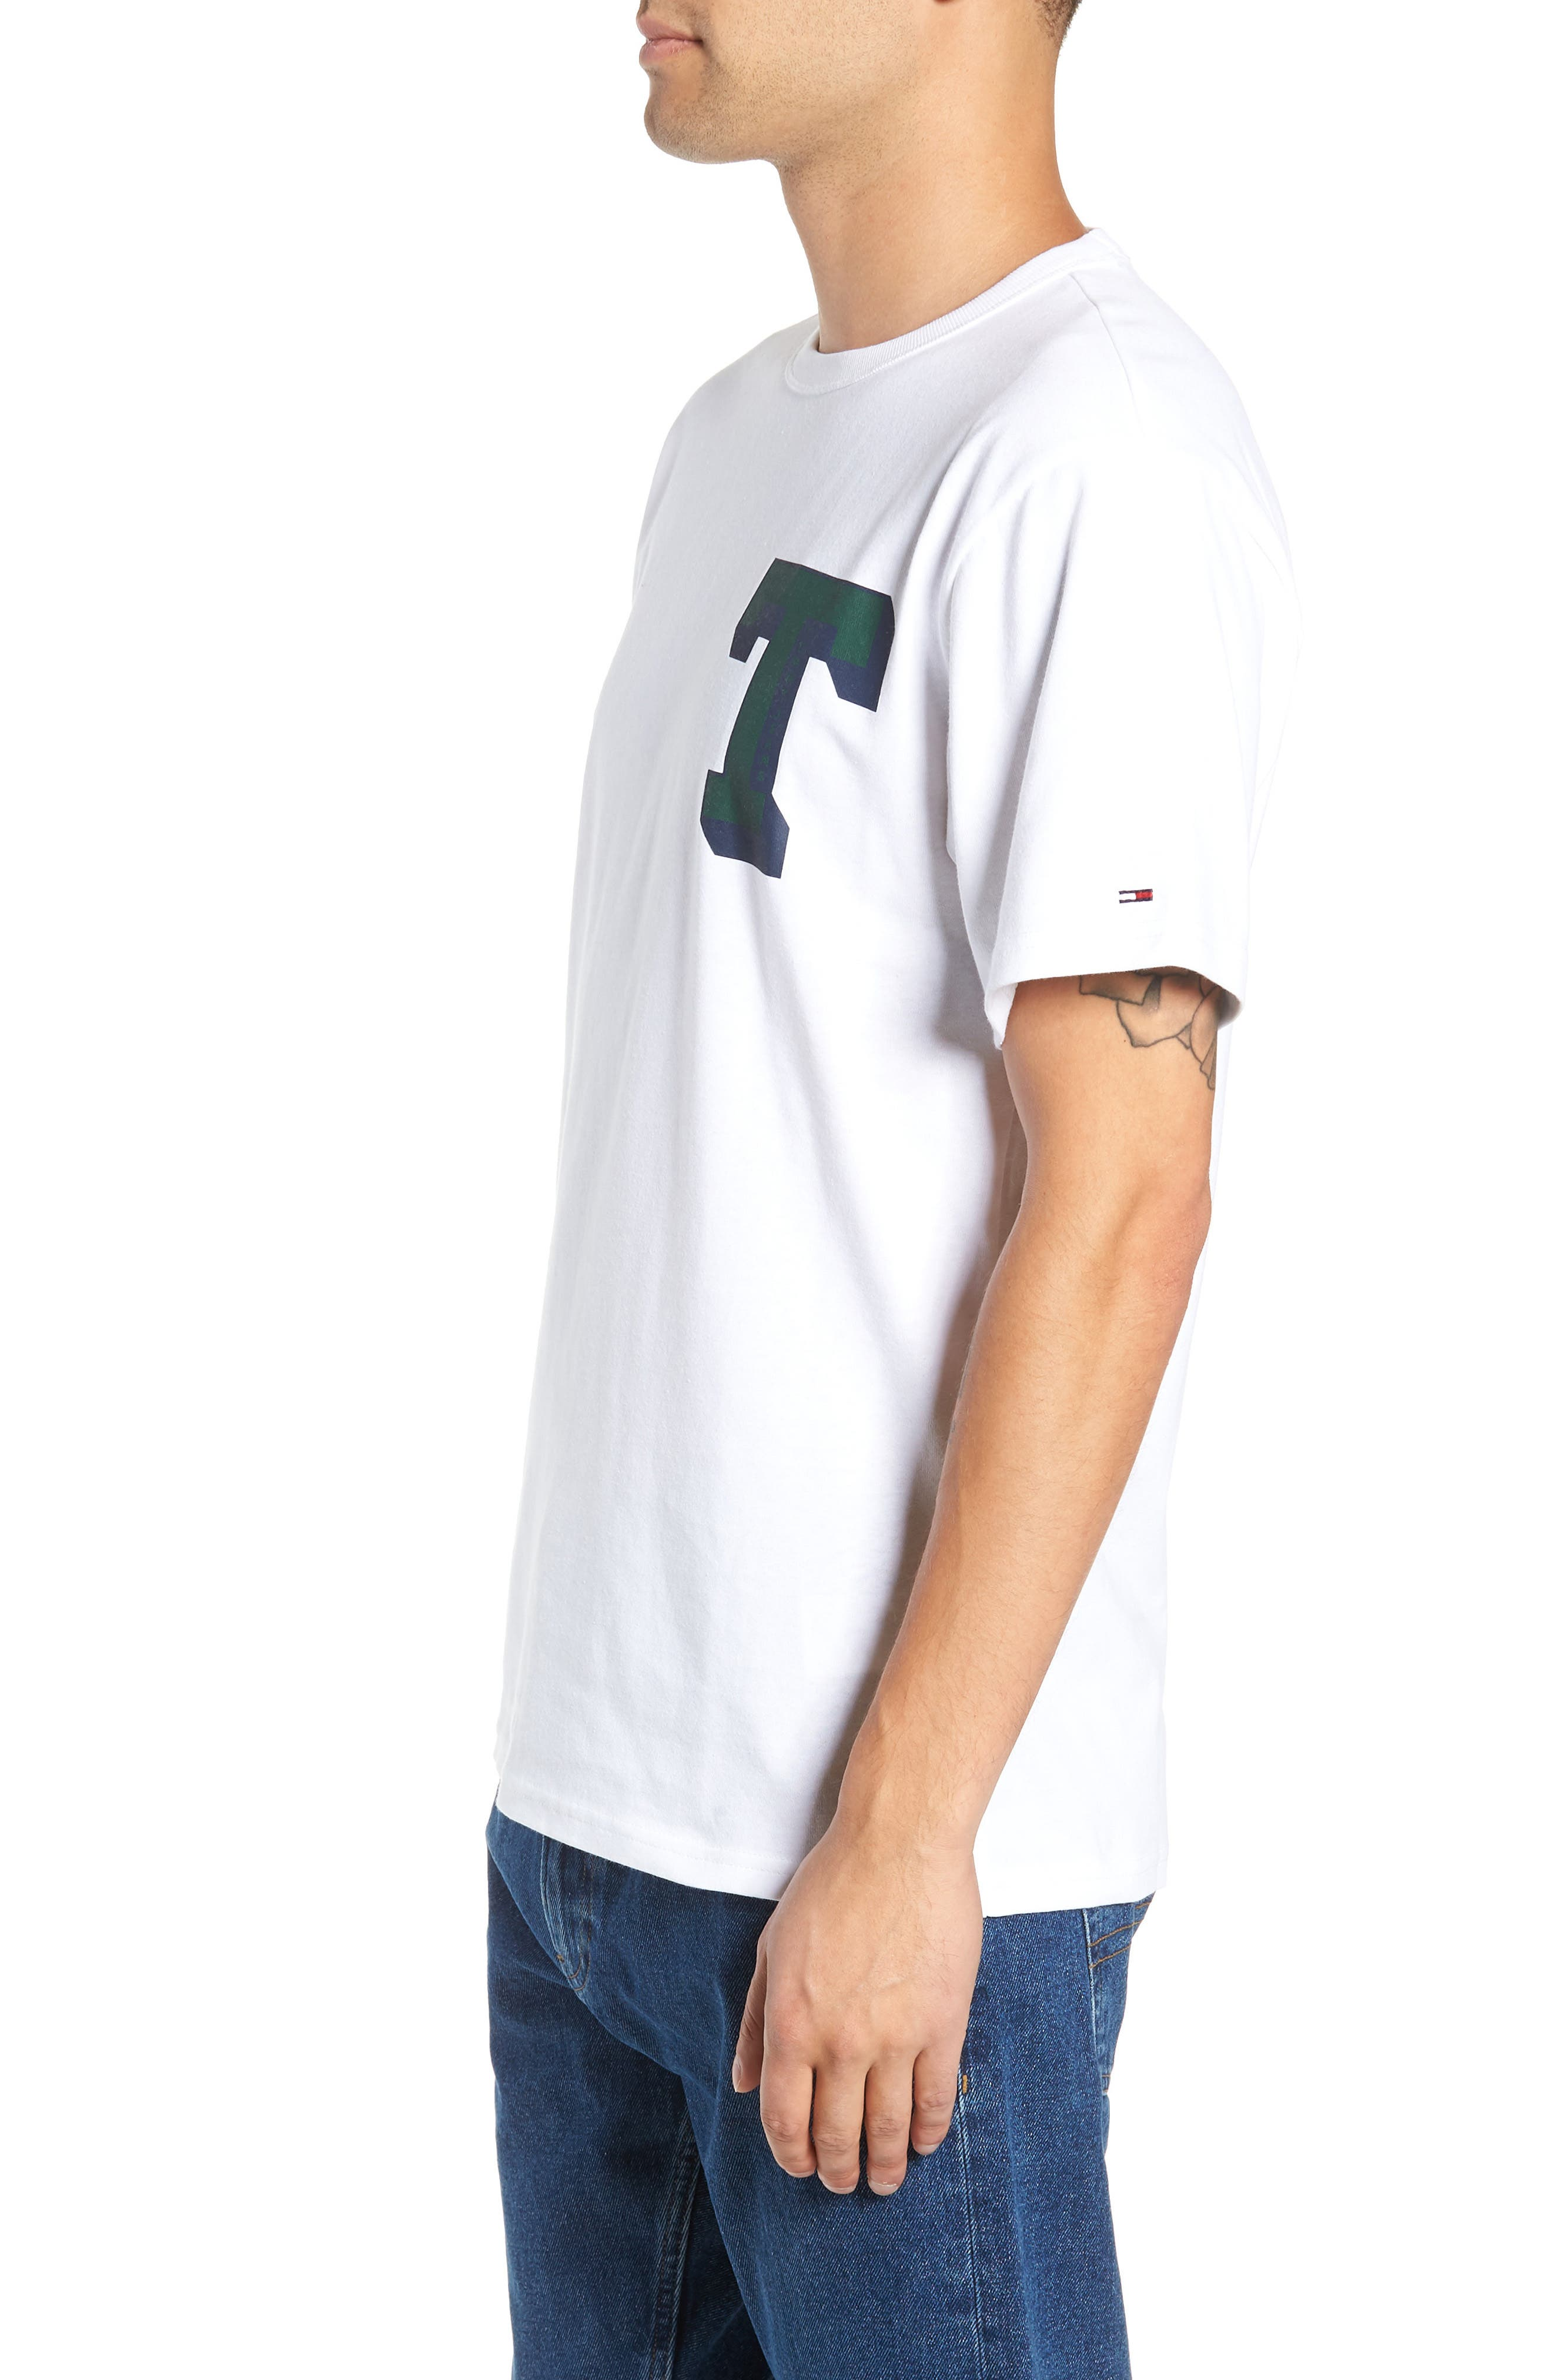 TOMMY JEANS,                             Essential Graphic T-Shirt,                             Alternate thumbnail 3, color,                             100